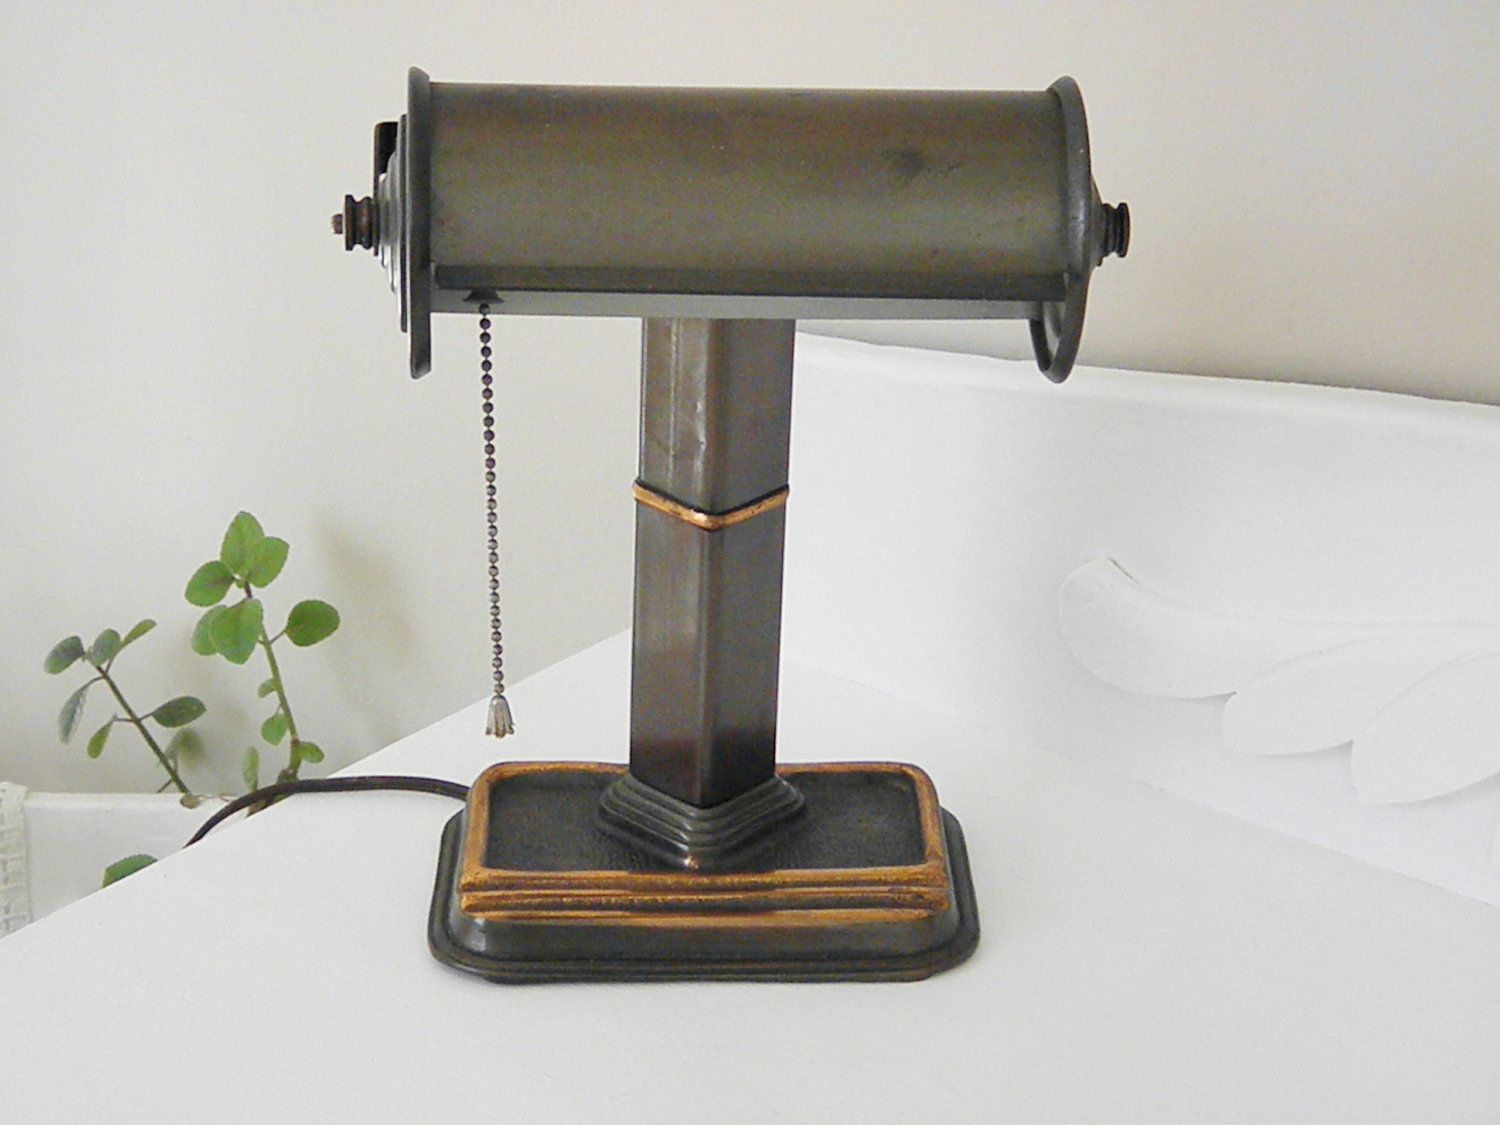 Vintage bankers desk lamp - Vintage Art Deco Brass Desk Bankers Lamp